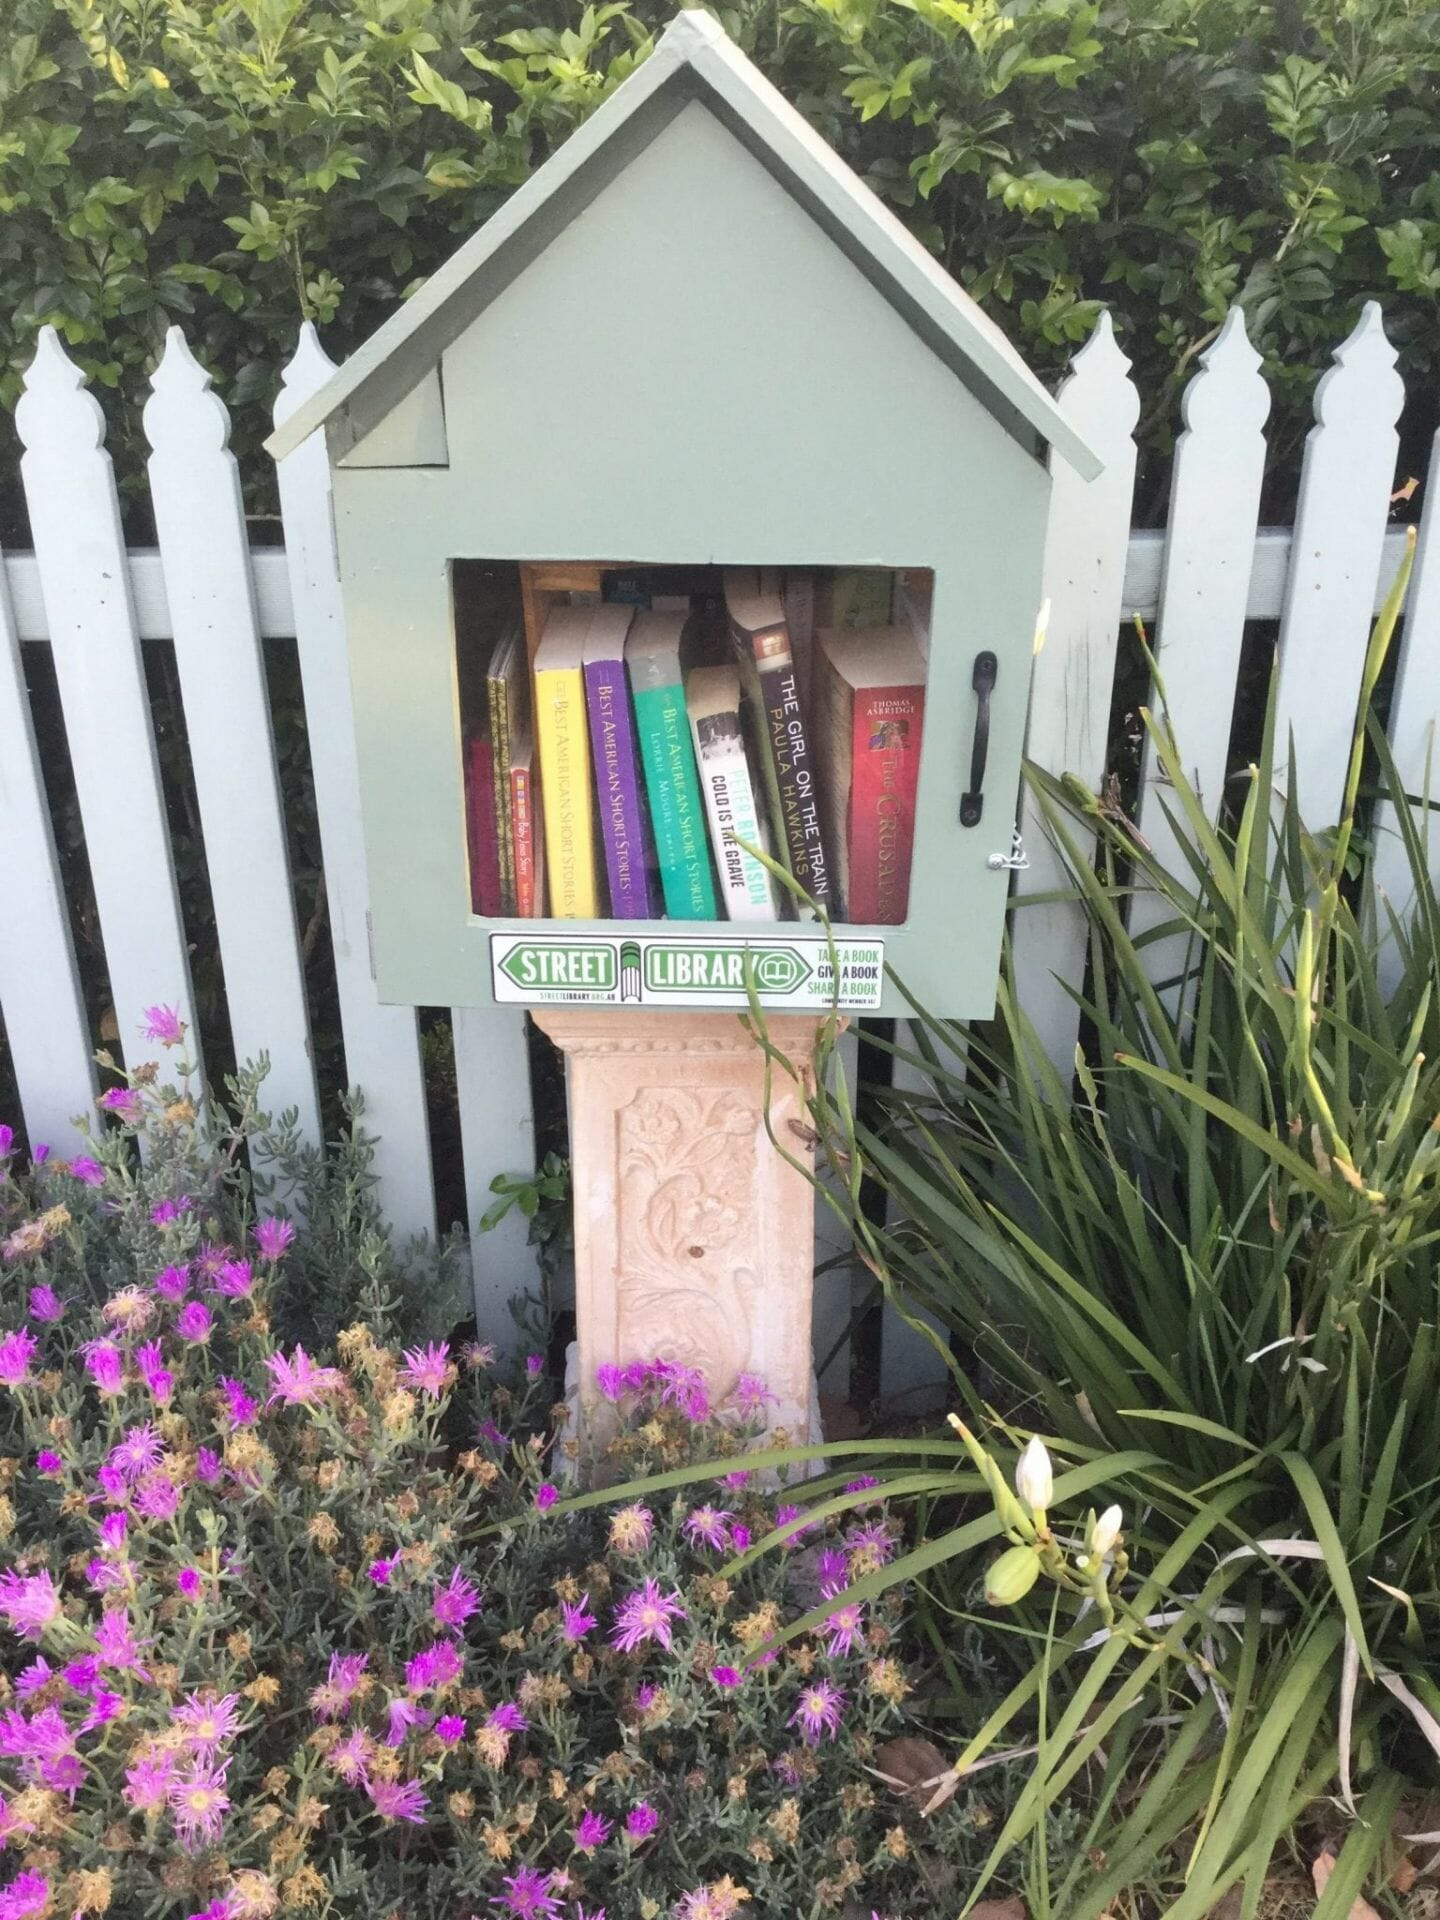 The little green library